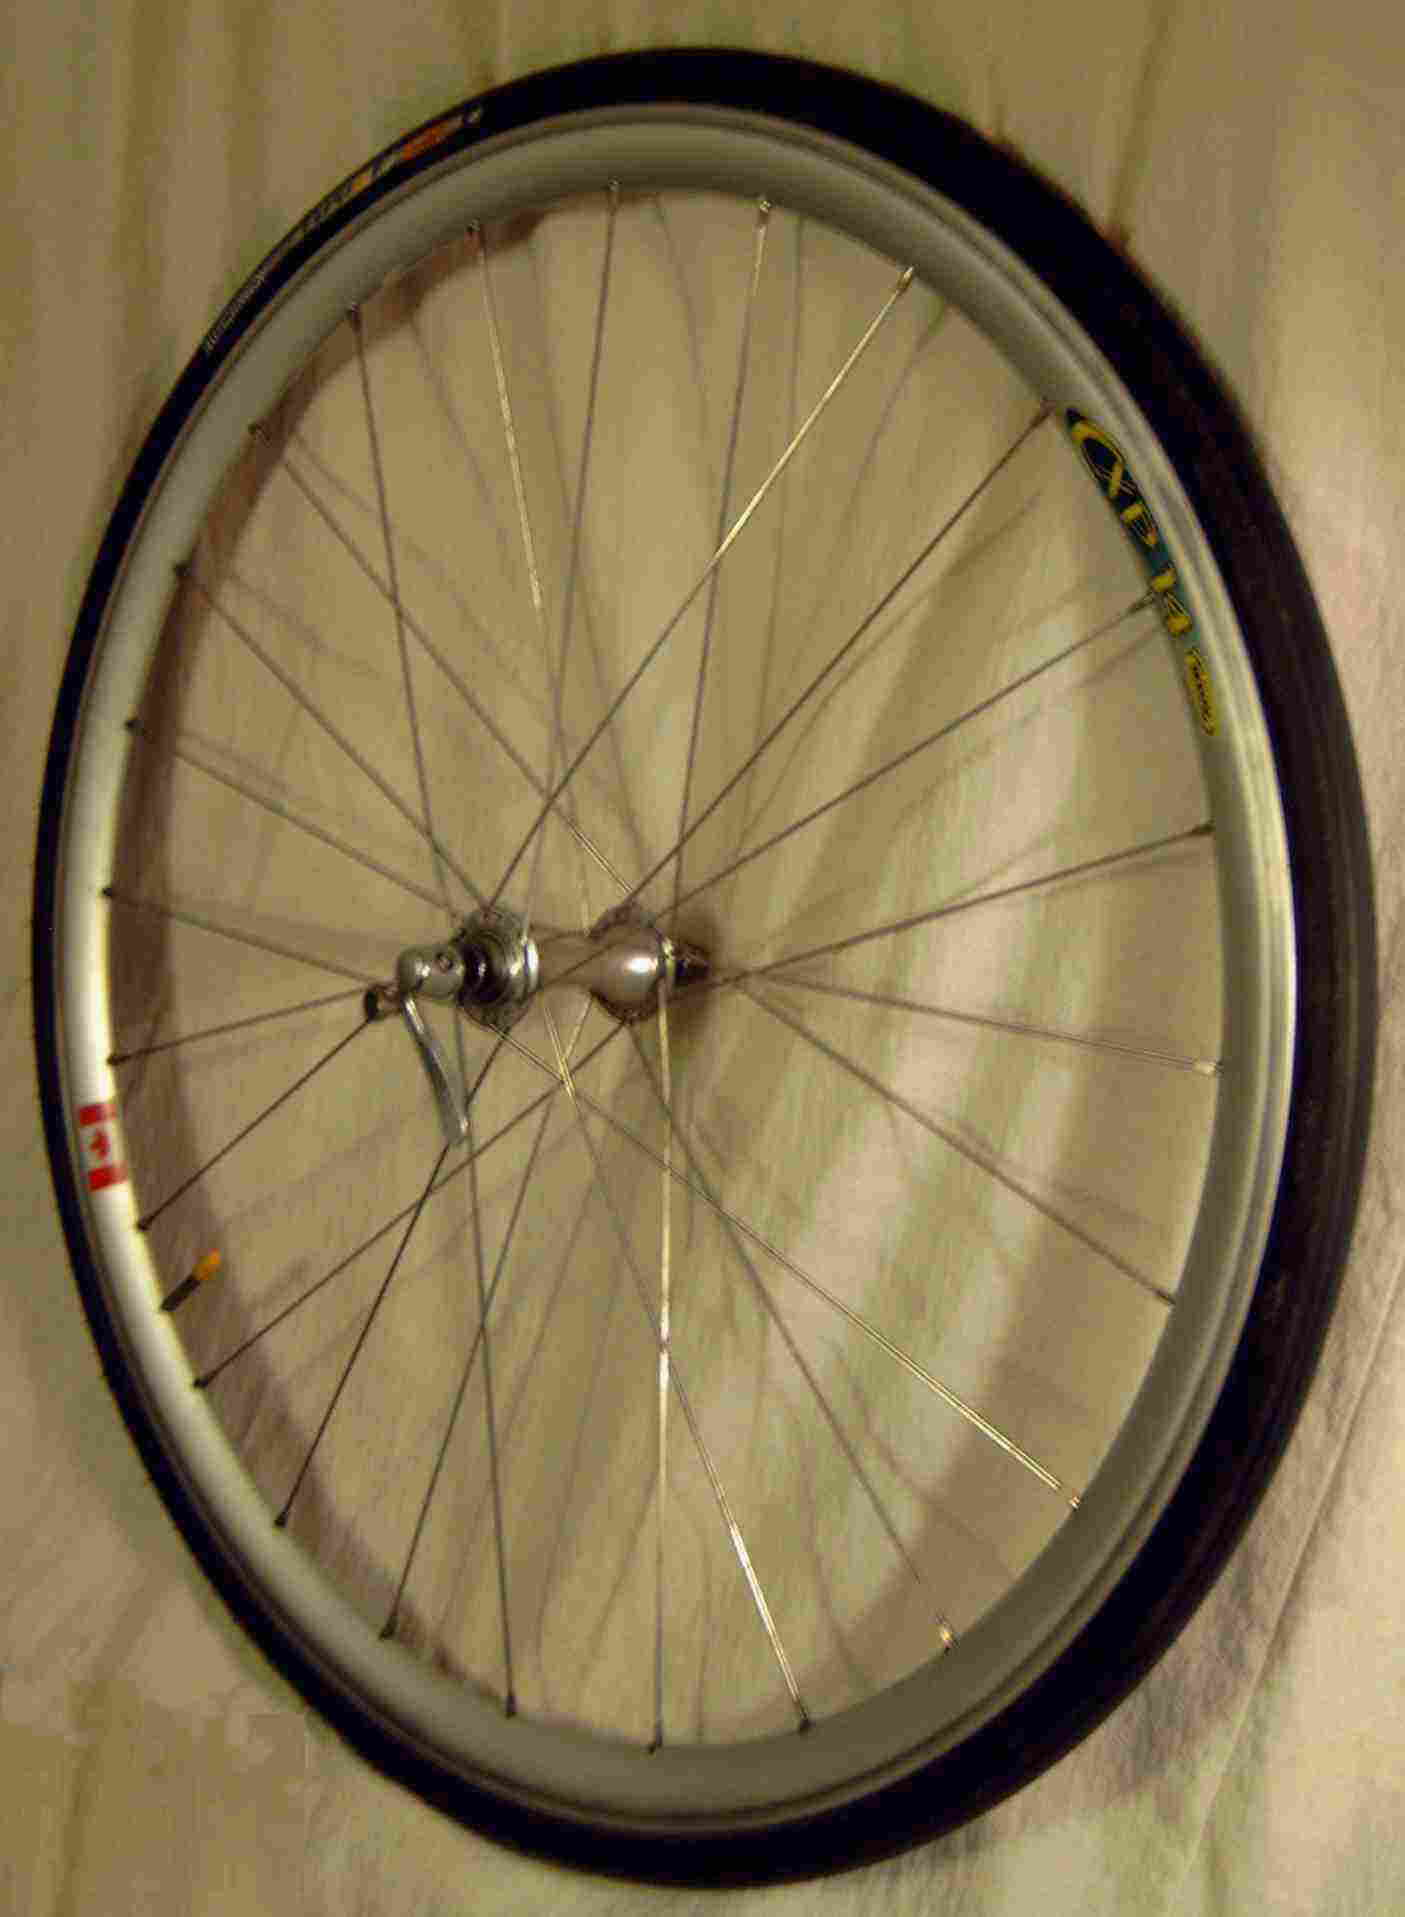 a9f49949452 The front wheel from a racing bicycle made using a Mavic rim